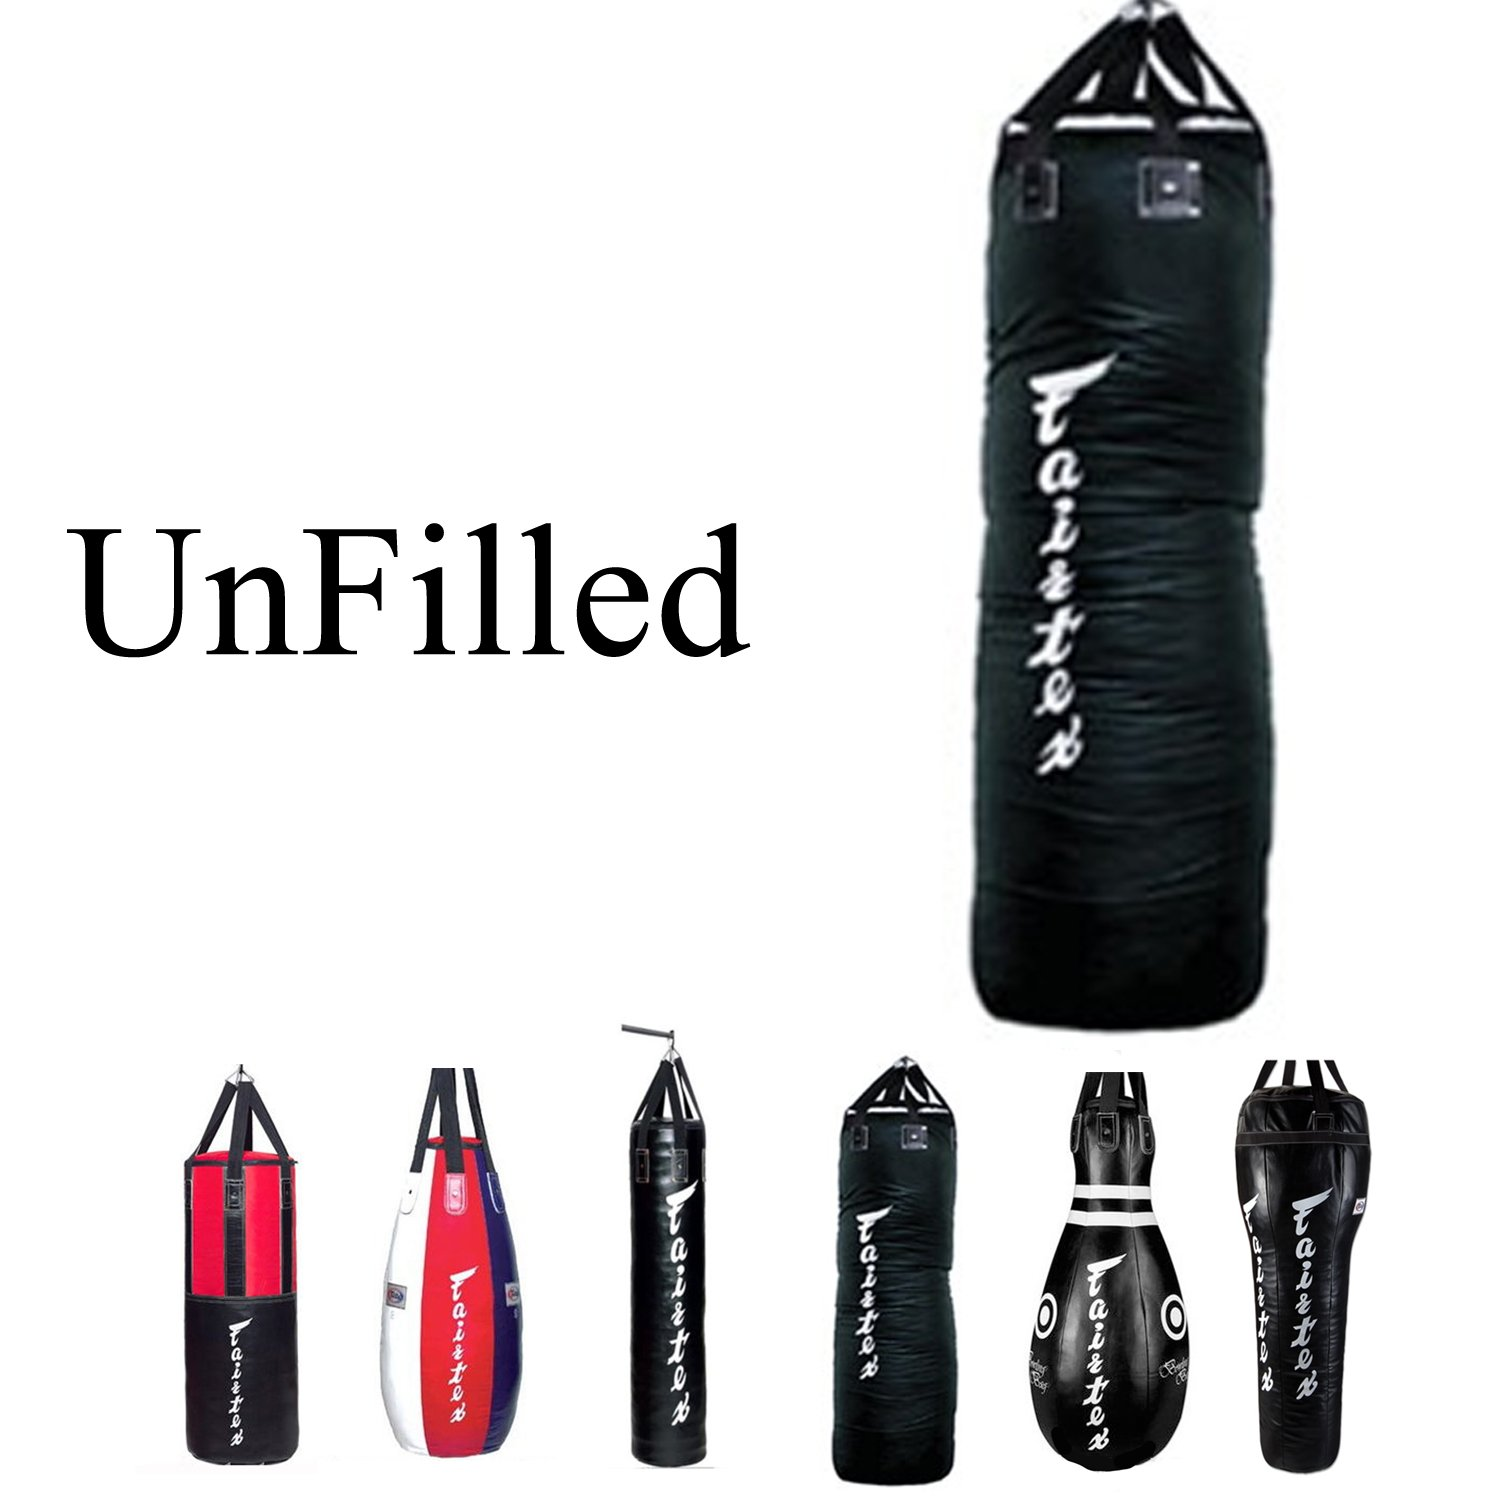 Fairtex Heavy Bag UNFILLED Banana, Tear Drop, Bowling, 7ft Pole, Angle Bag, HB3 HB4 HB6 HB7 HB10 HB12 for Muay Thai, Boxing, Kickboxing, MMA (HB7 7ft Pole Bag) by Fairtex